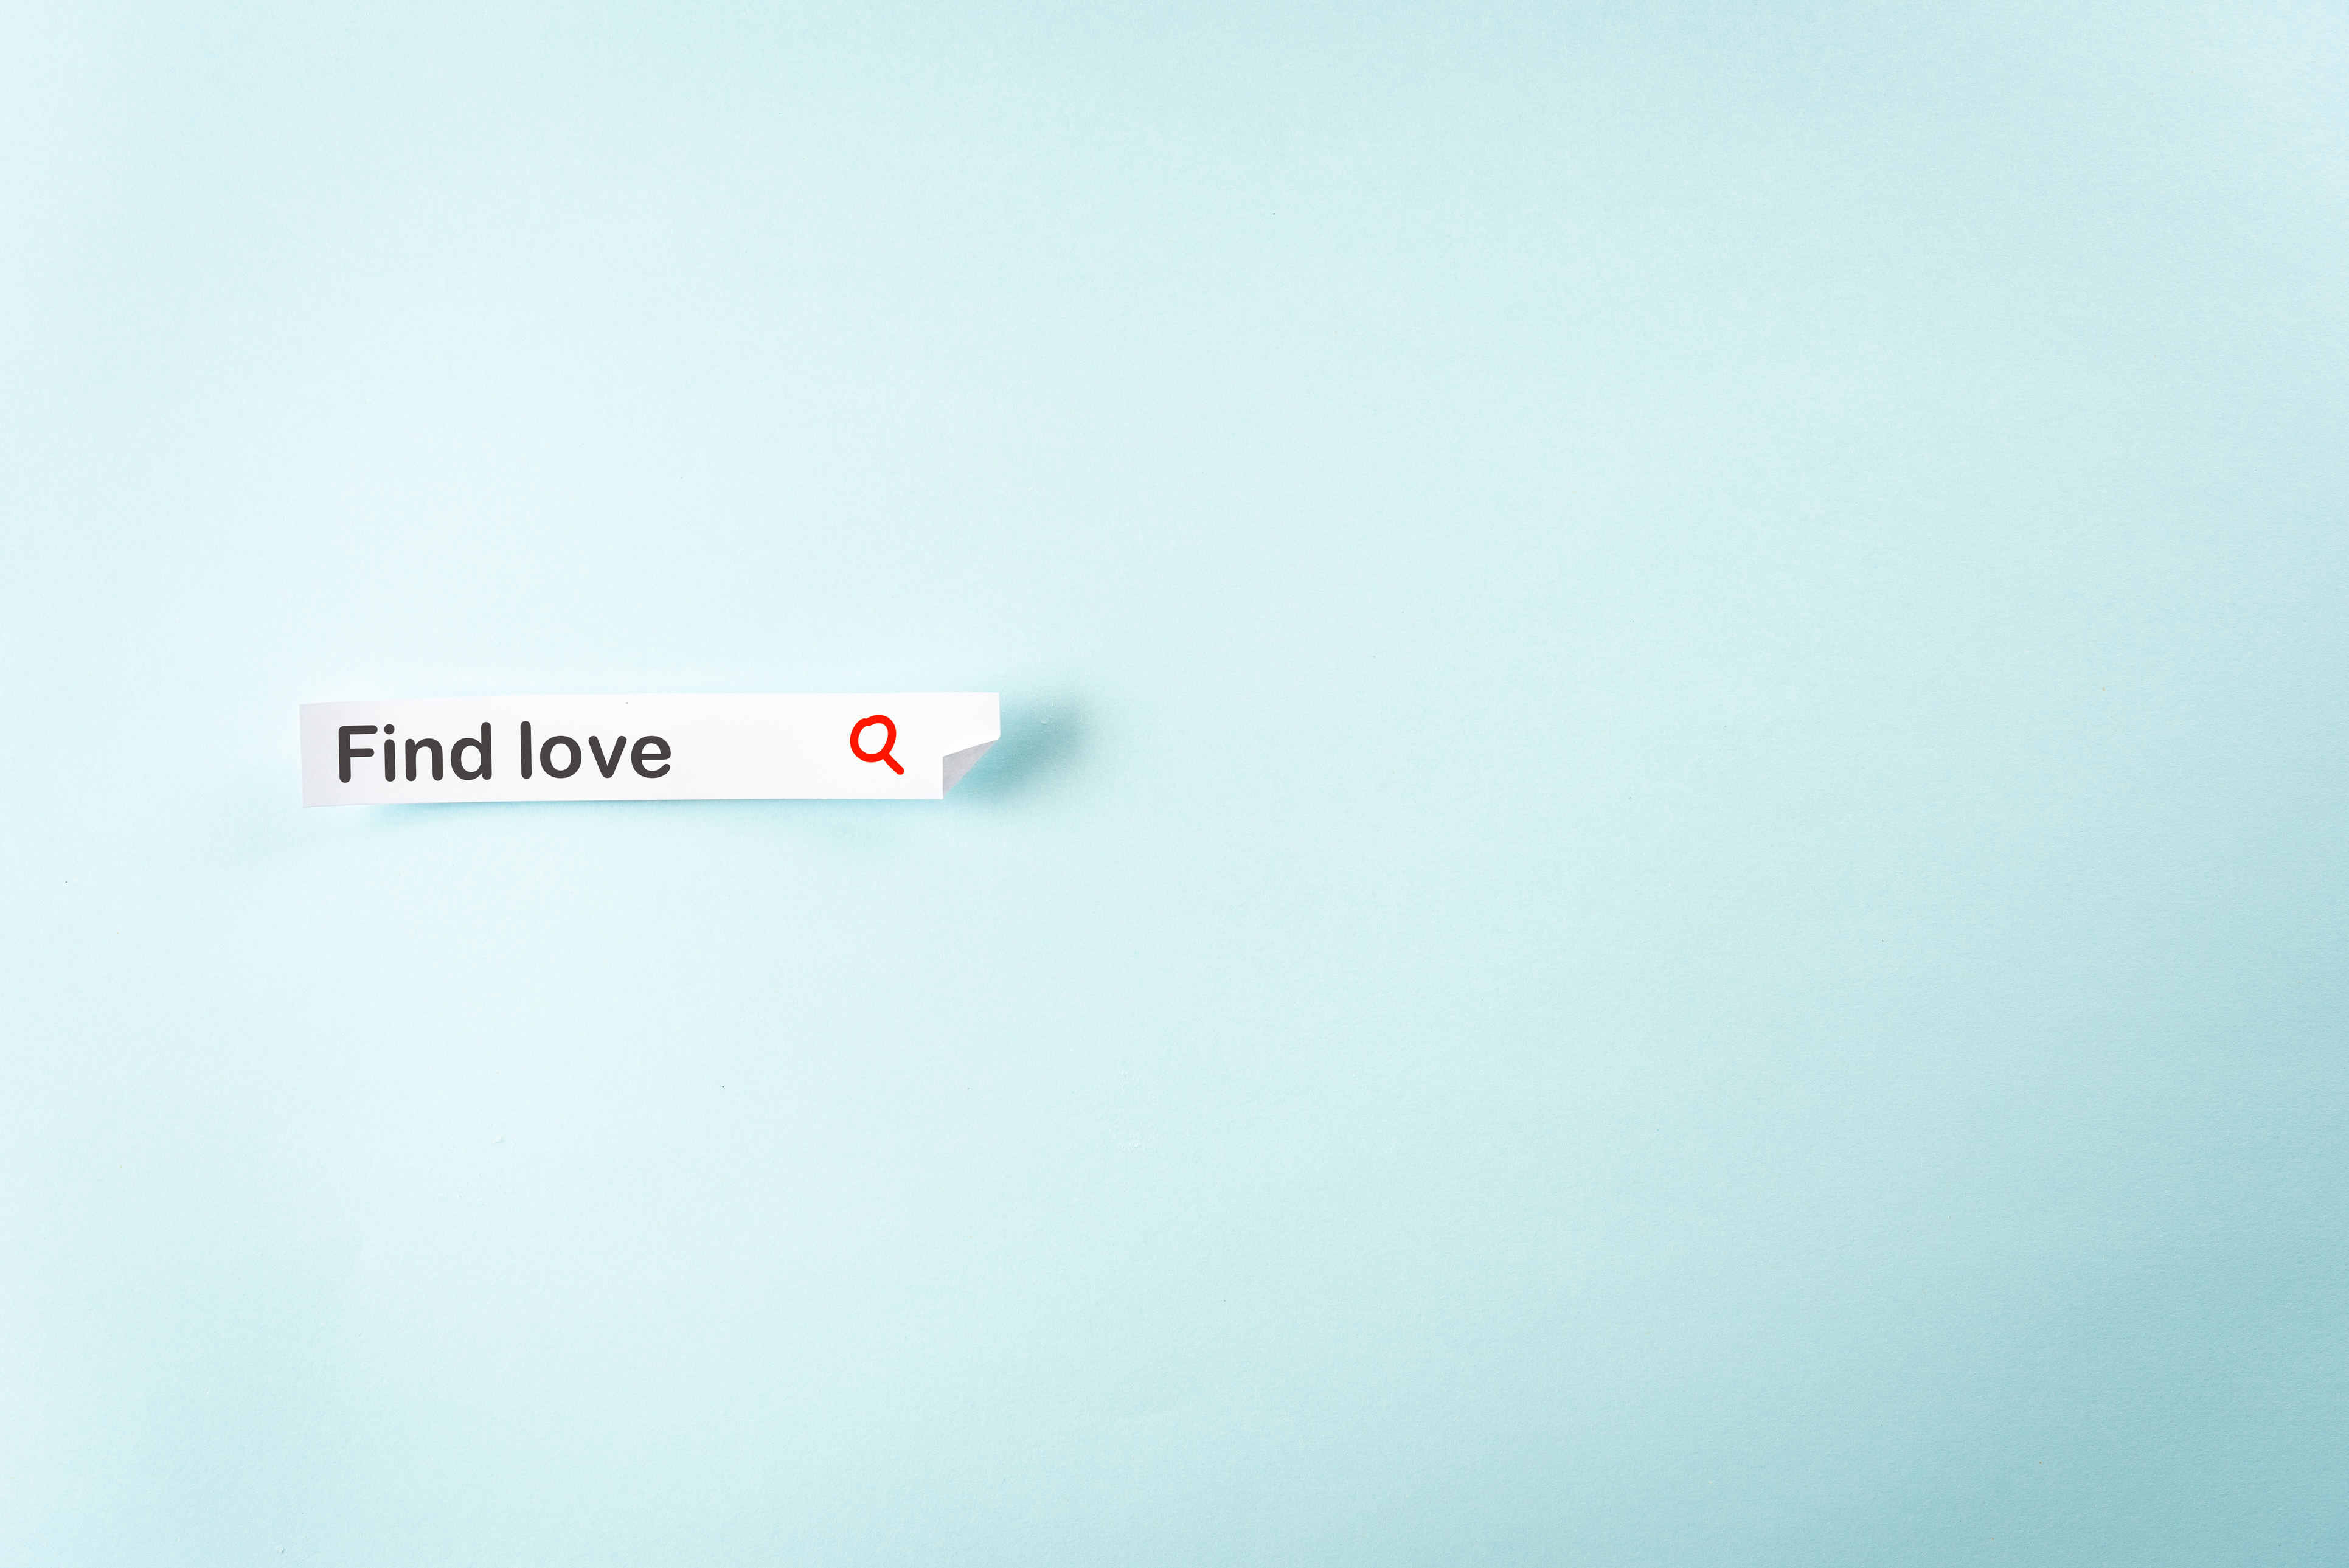 Is It Possible To Find Love Online Or Should I Avoid Online Dating?